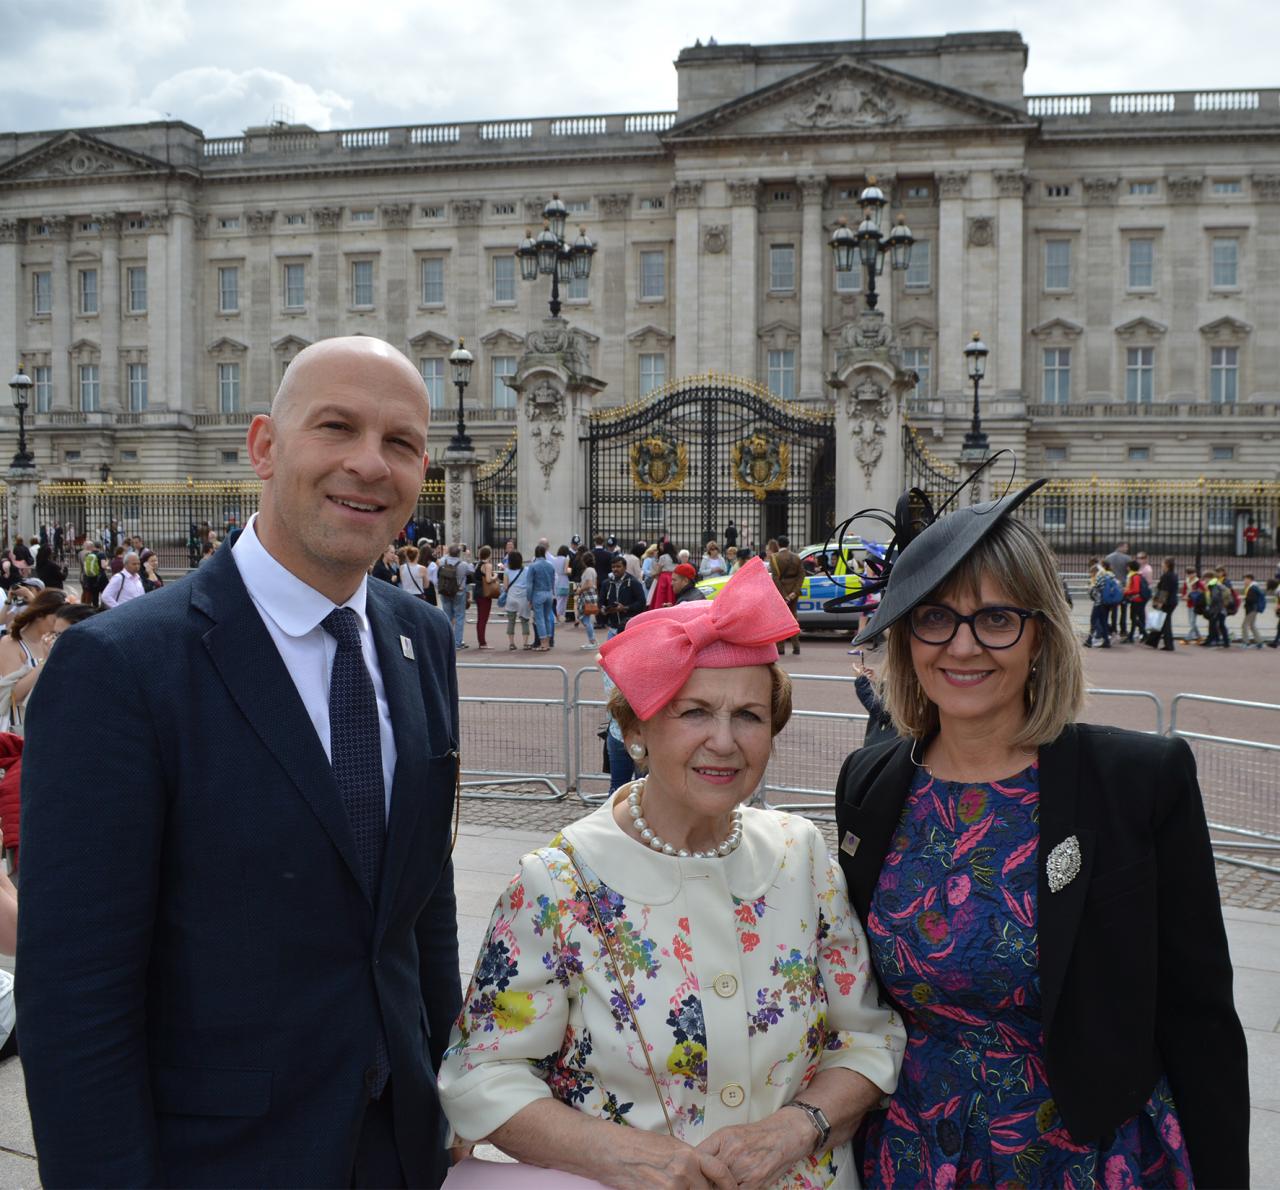 HMDT Blog: From surviving the Holocaust to Buckingham Palace